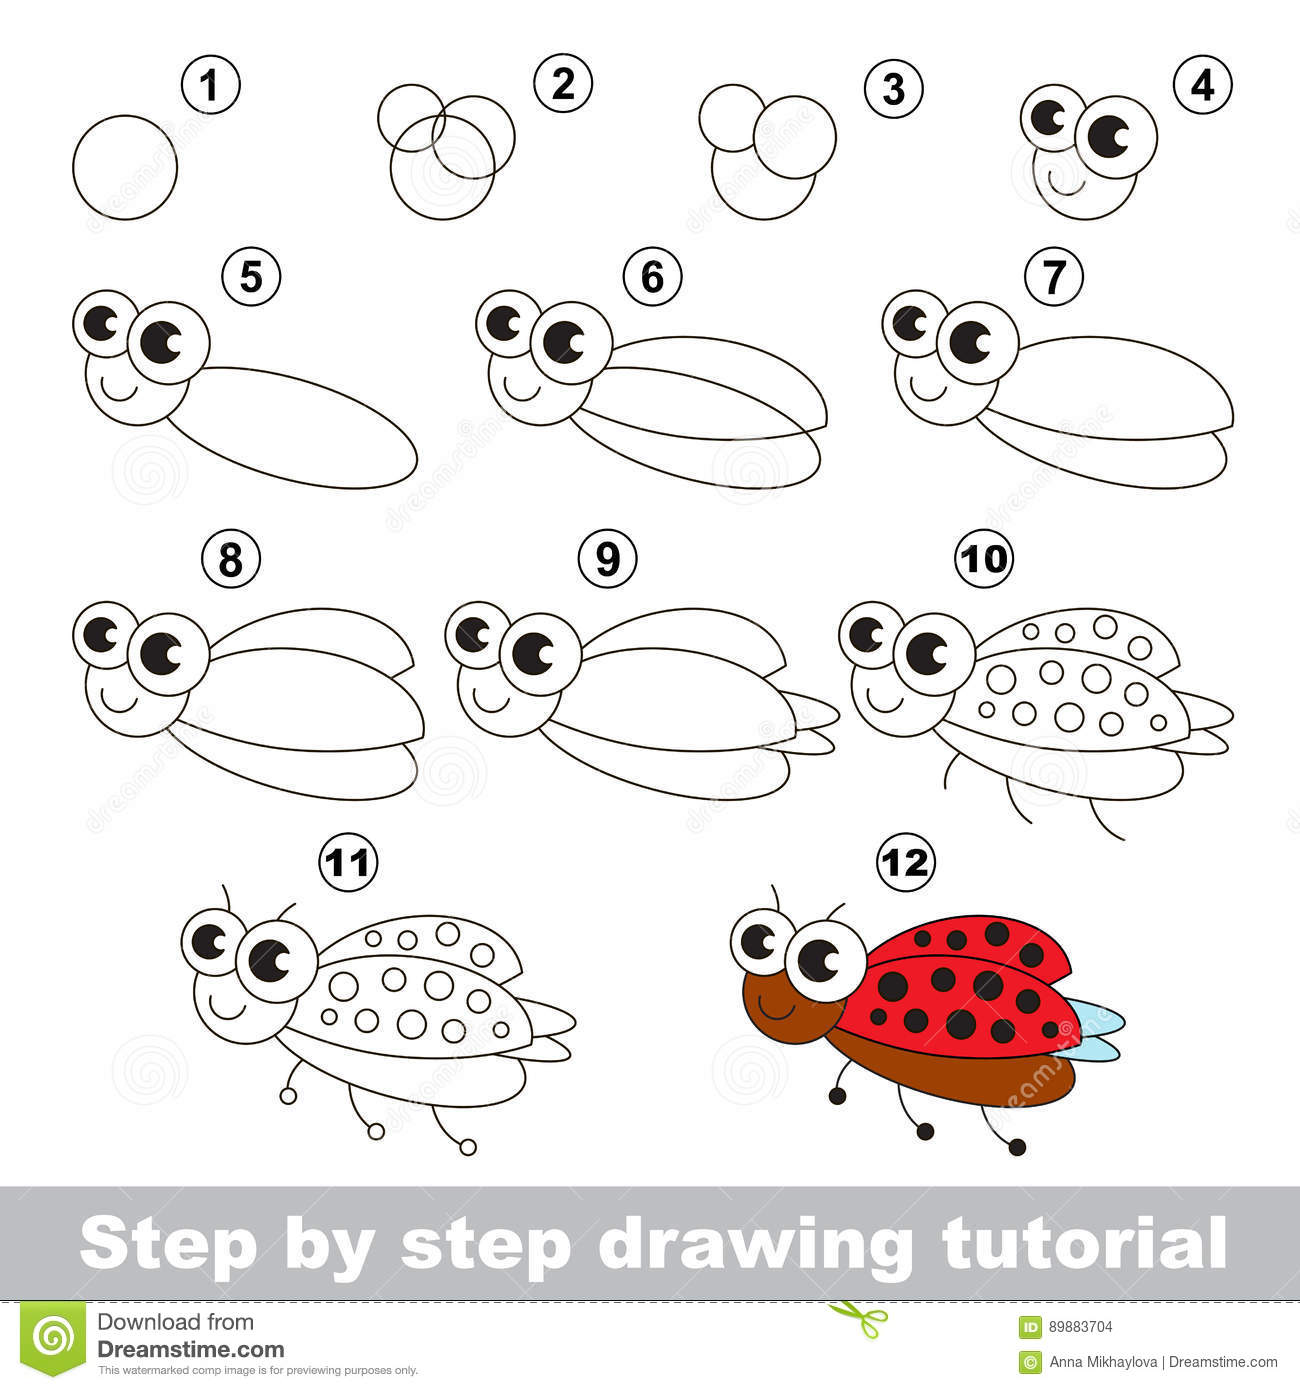 Drawing Tutorial Ladybird Stock Vector Illustration Of Insect Ladybug 89883704